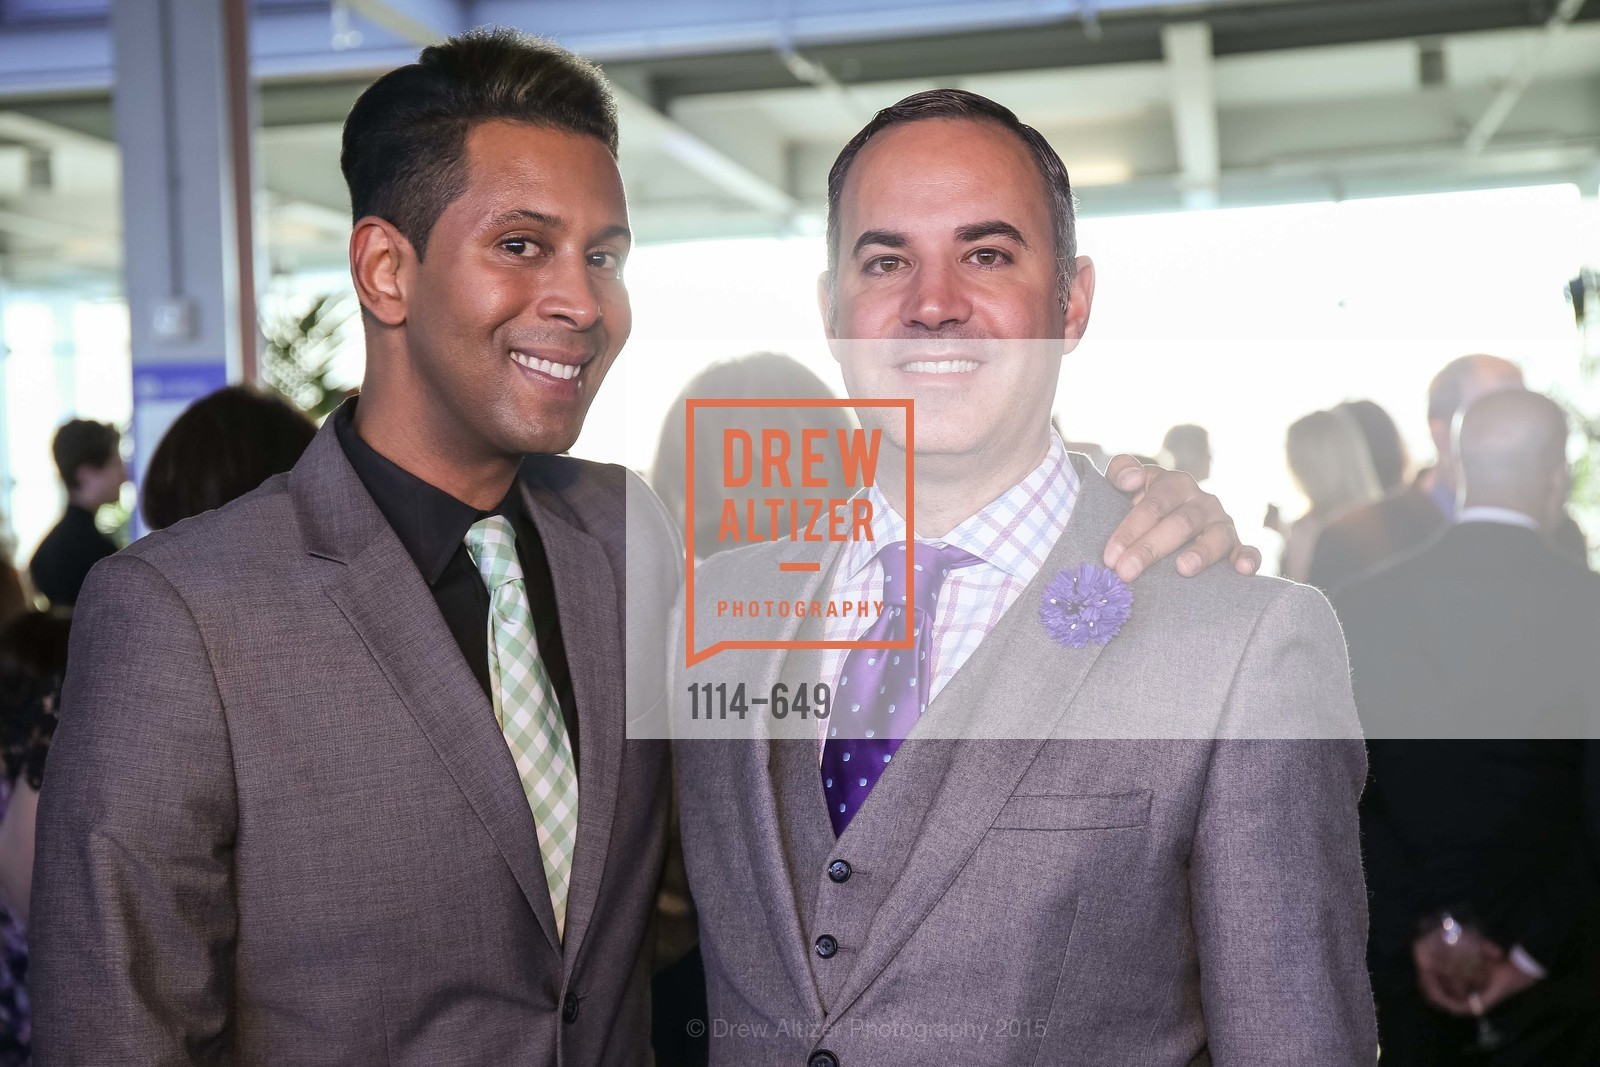 Emillio Mesa, Robert Arnold-Kraft, Fashion Forward: An Evening with Erdem presented by SF Opera Guild and Saks Fifth Avenue, Pier 27. Pier 27, The Embarcadero, March 25th, 2015,Drew Altizer, Drew Altizer Photography, full-service agency, private events, San Francisco photographer, photographer california